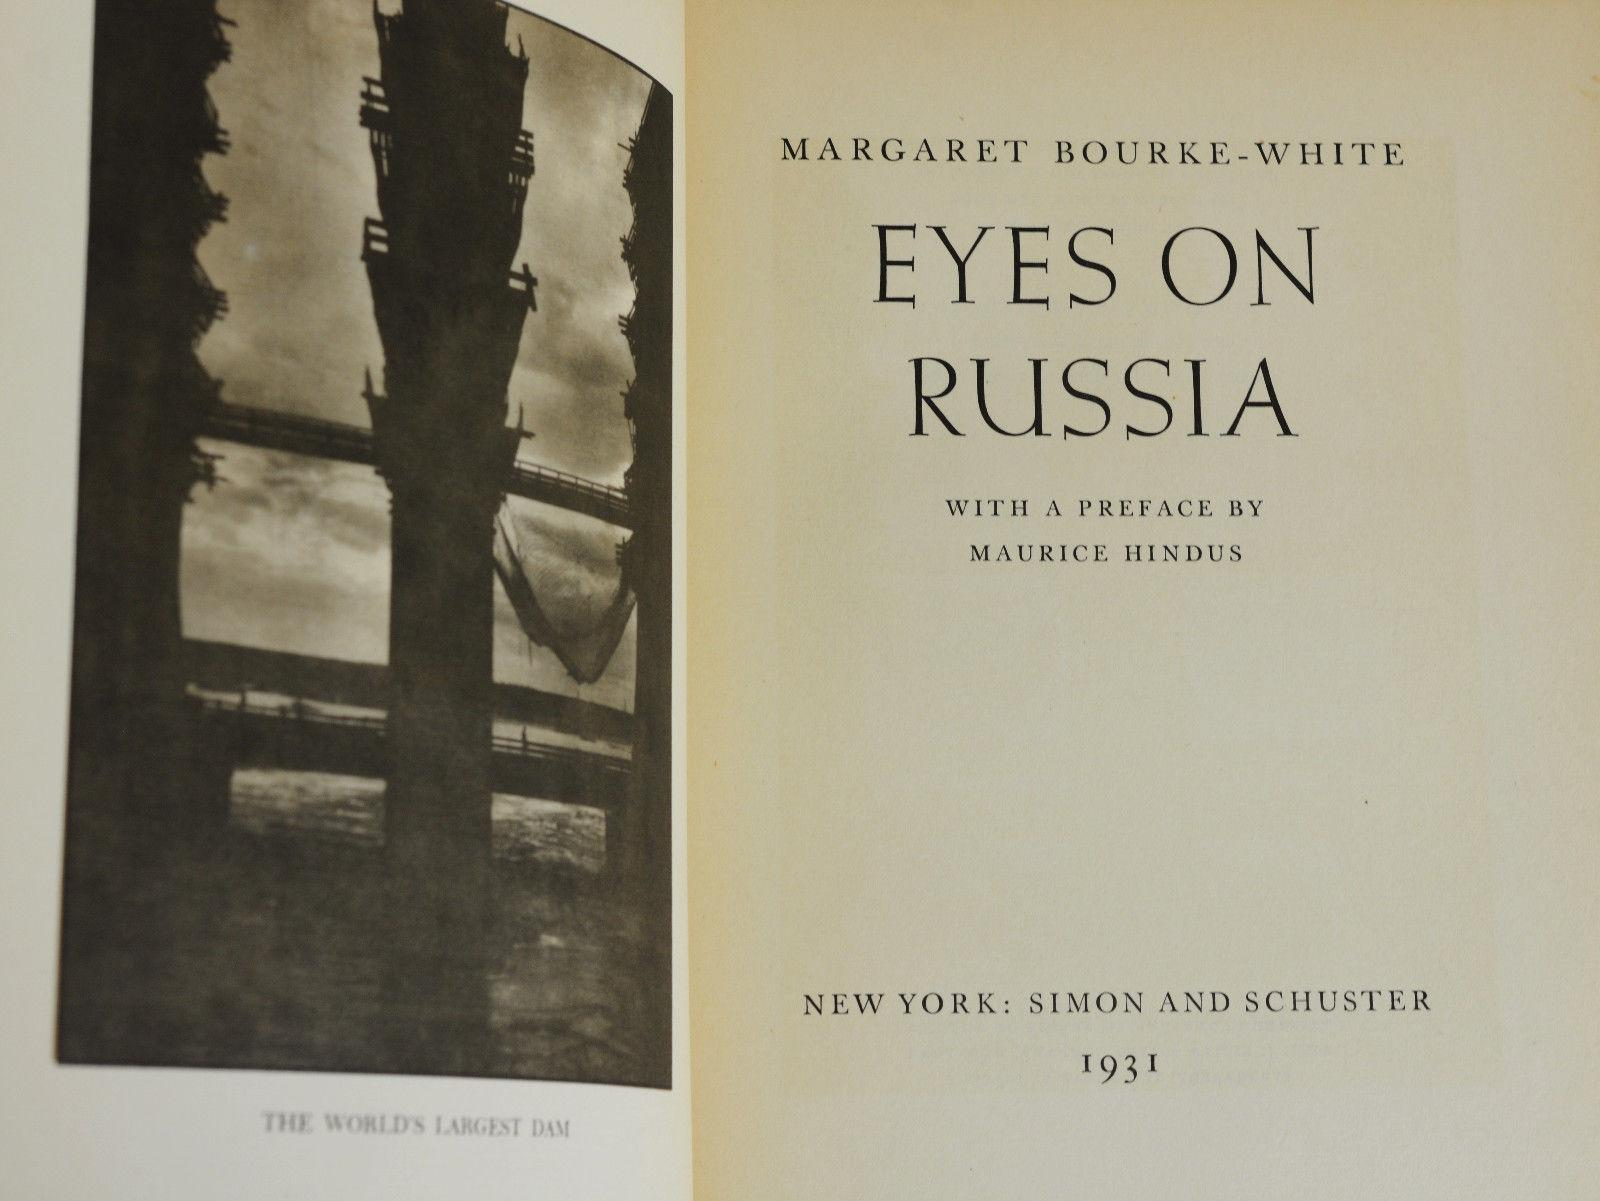 Margaret Bourke-White / Eyes on Russia. Nueva York: Simon and Schuster, 1931